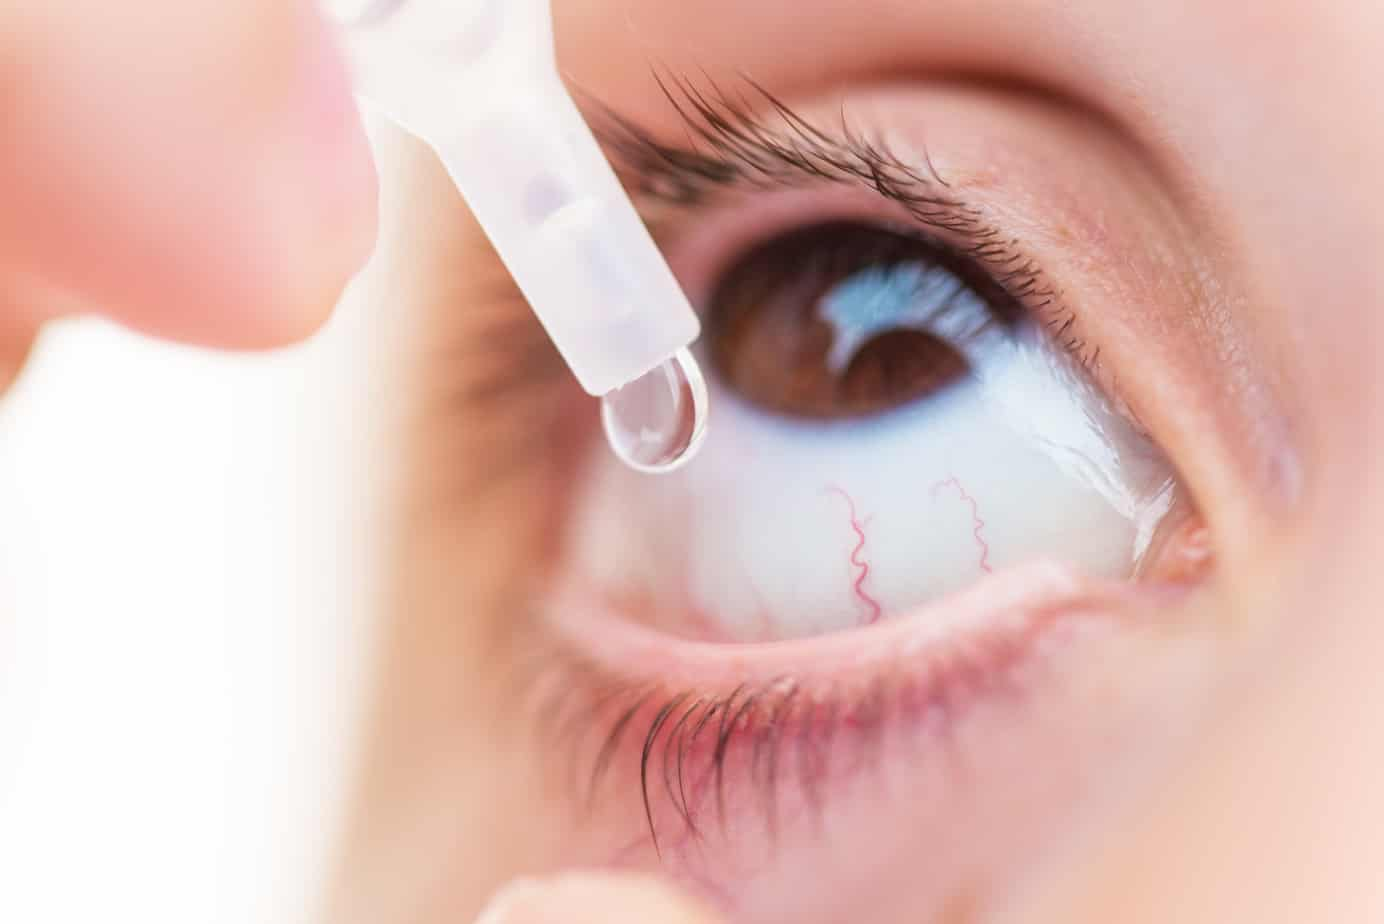 Possible Treatments for Eye Irritation and Redness